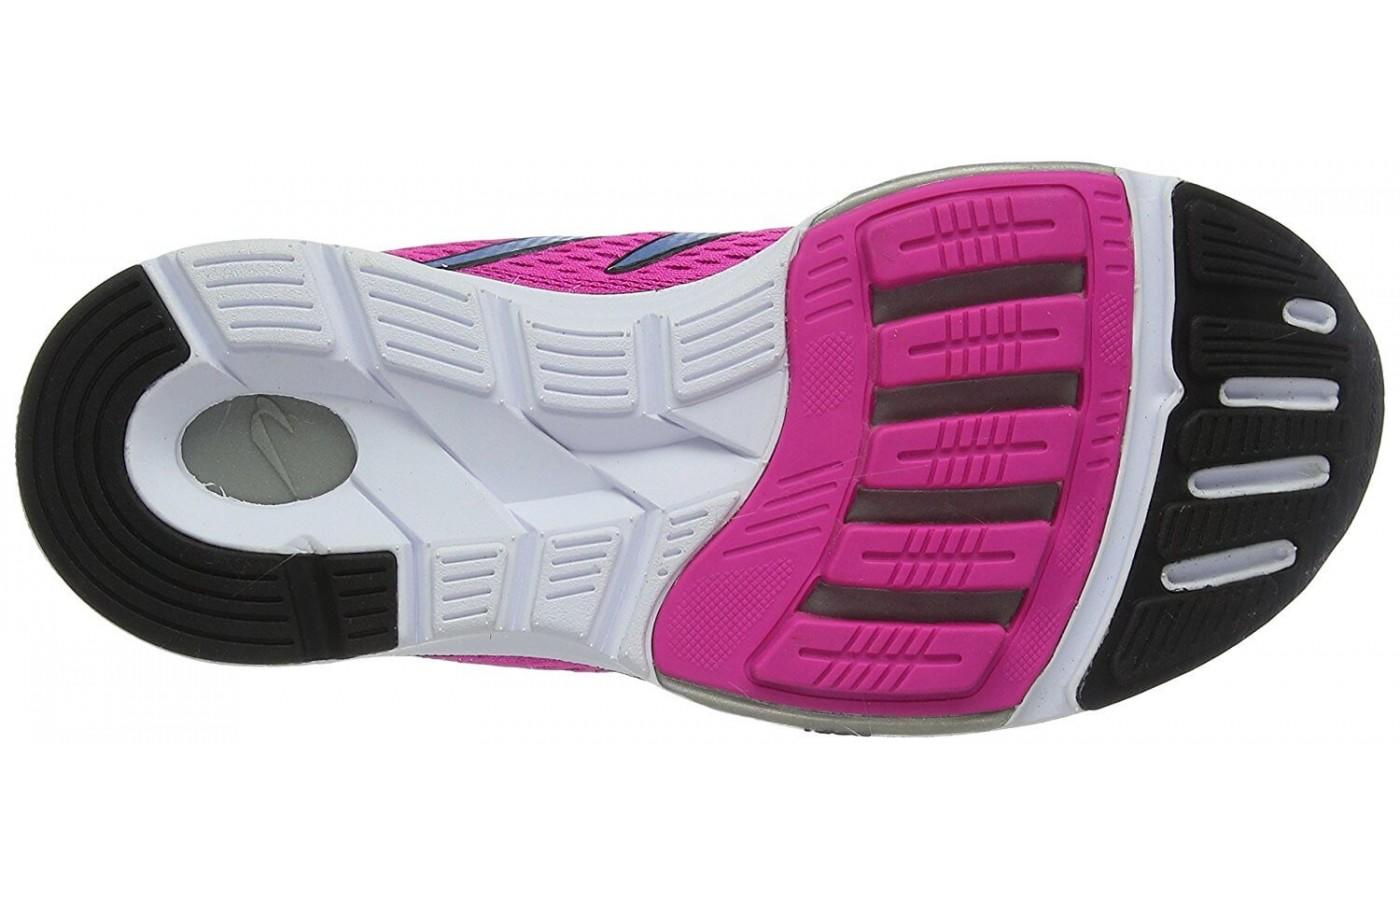 Outsole of the Newton Gravity 6 is made of high density rubber